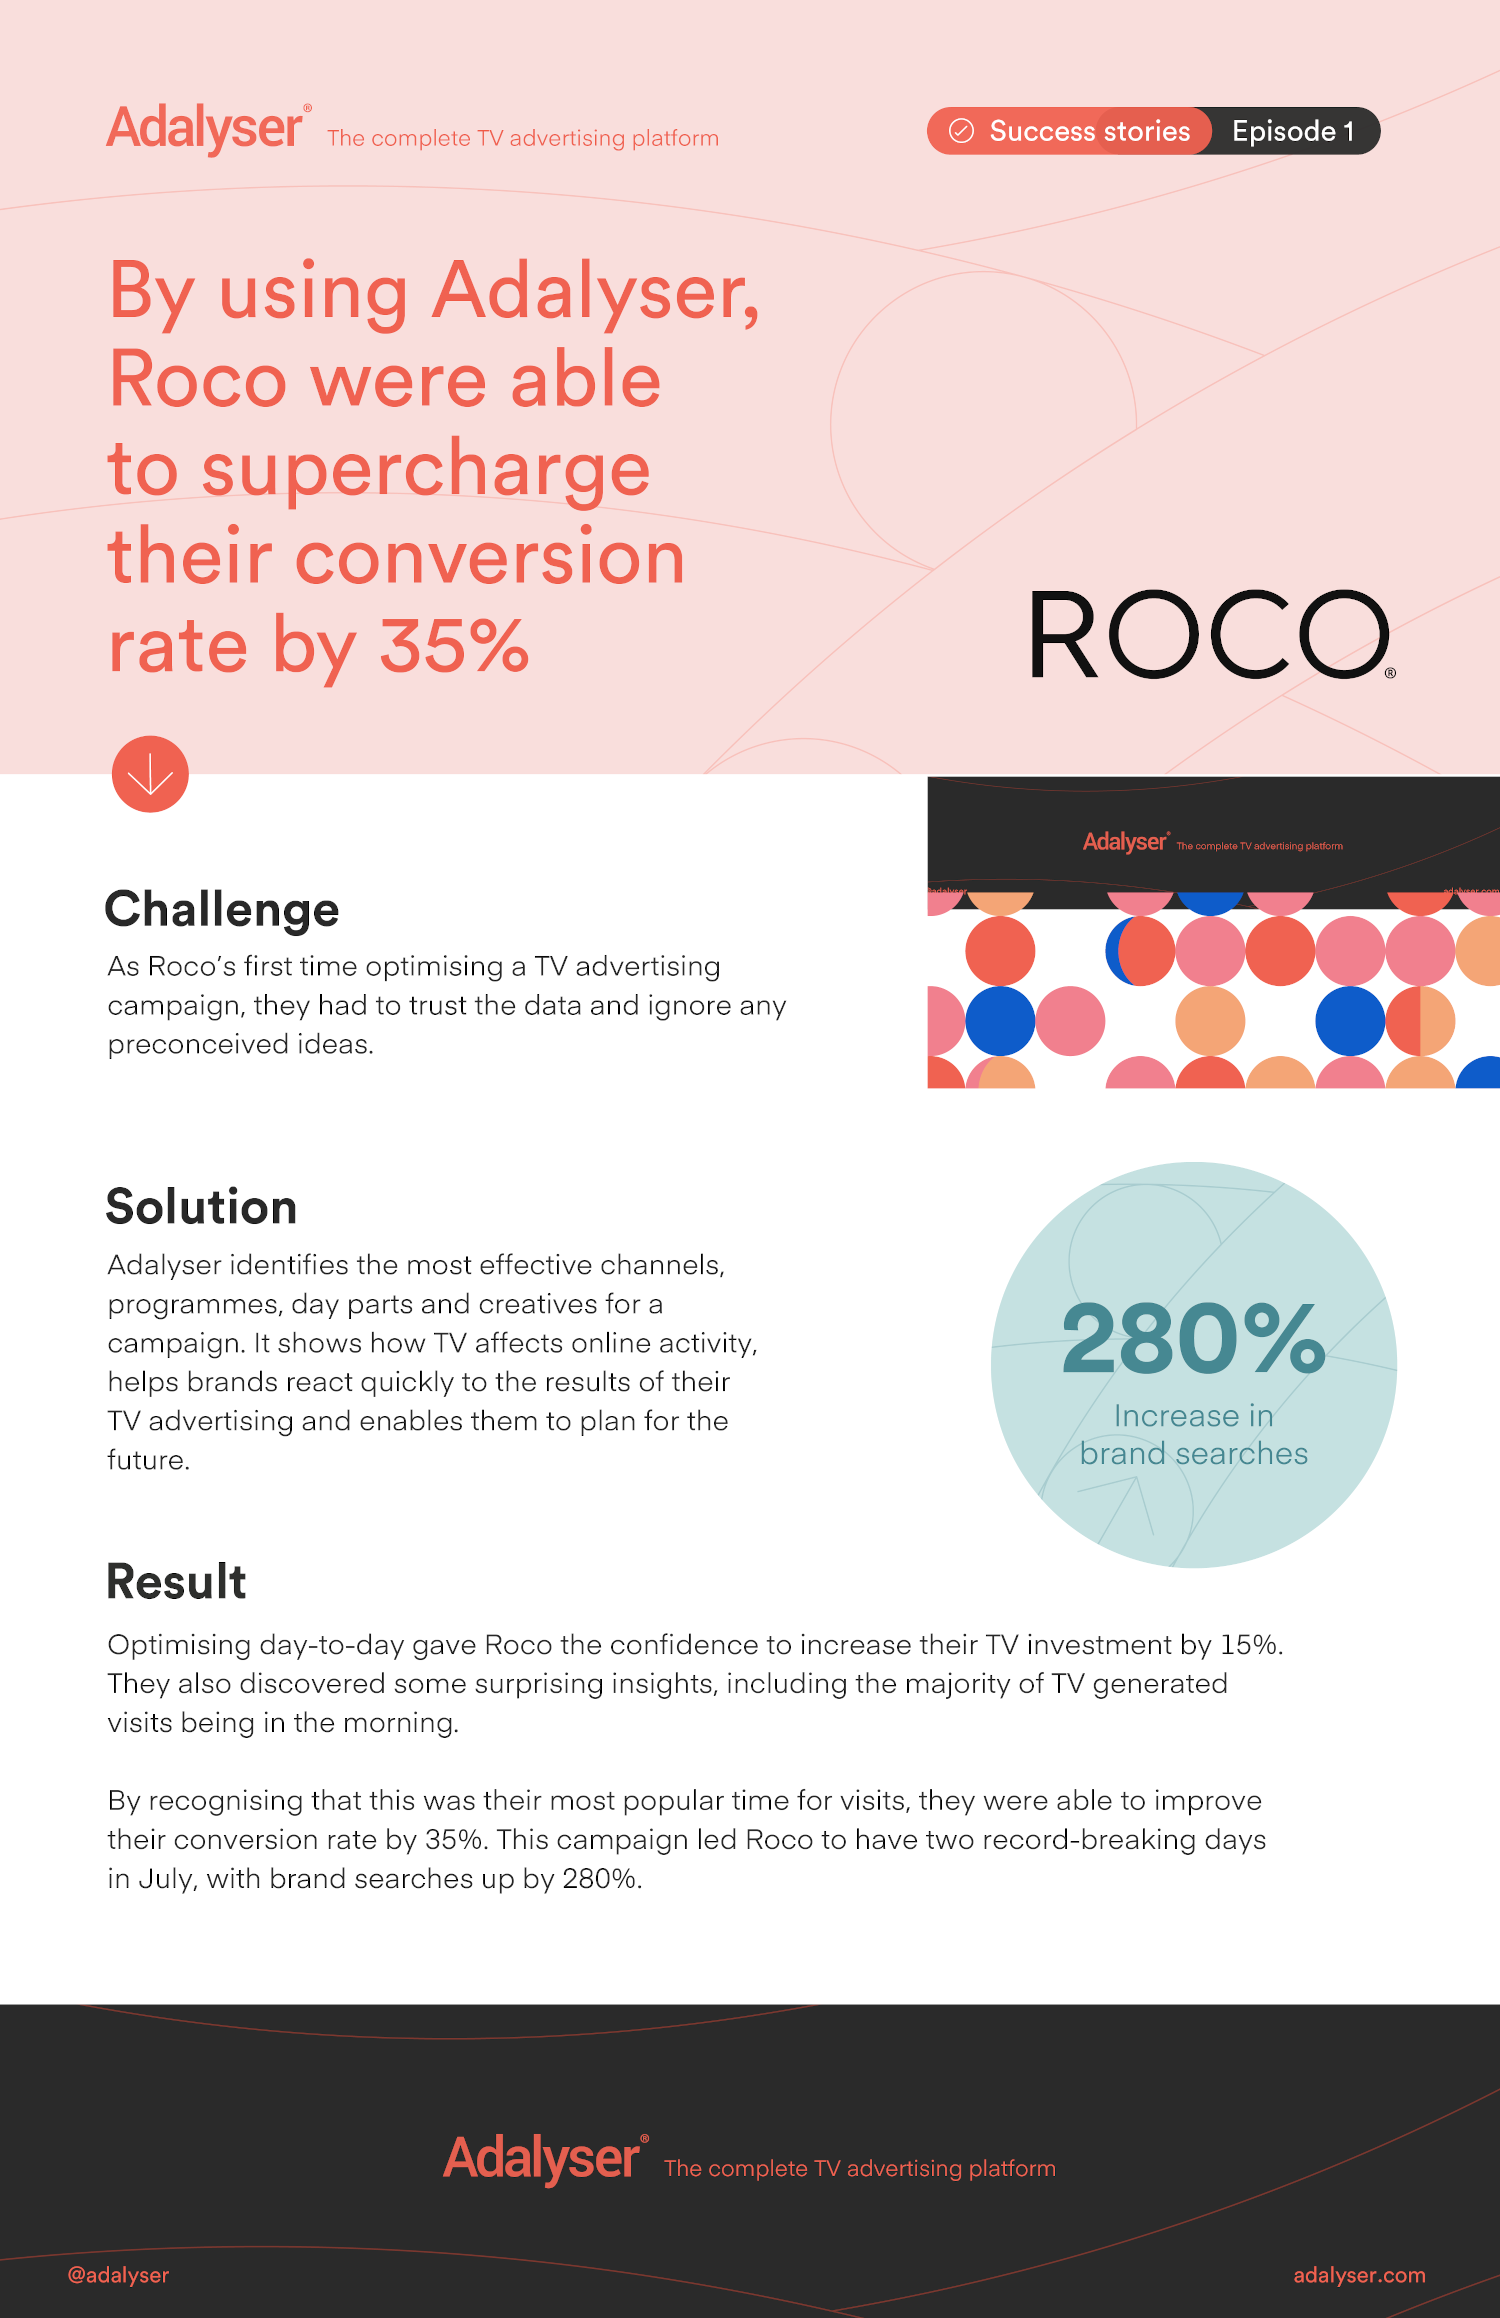 infographic analysing roco's success story and the benefits of using adalyser